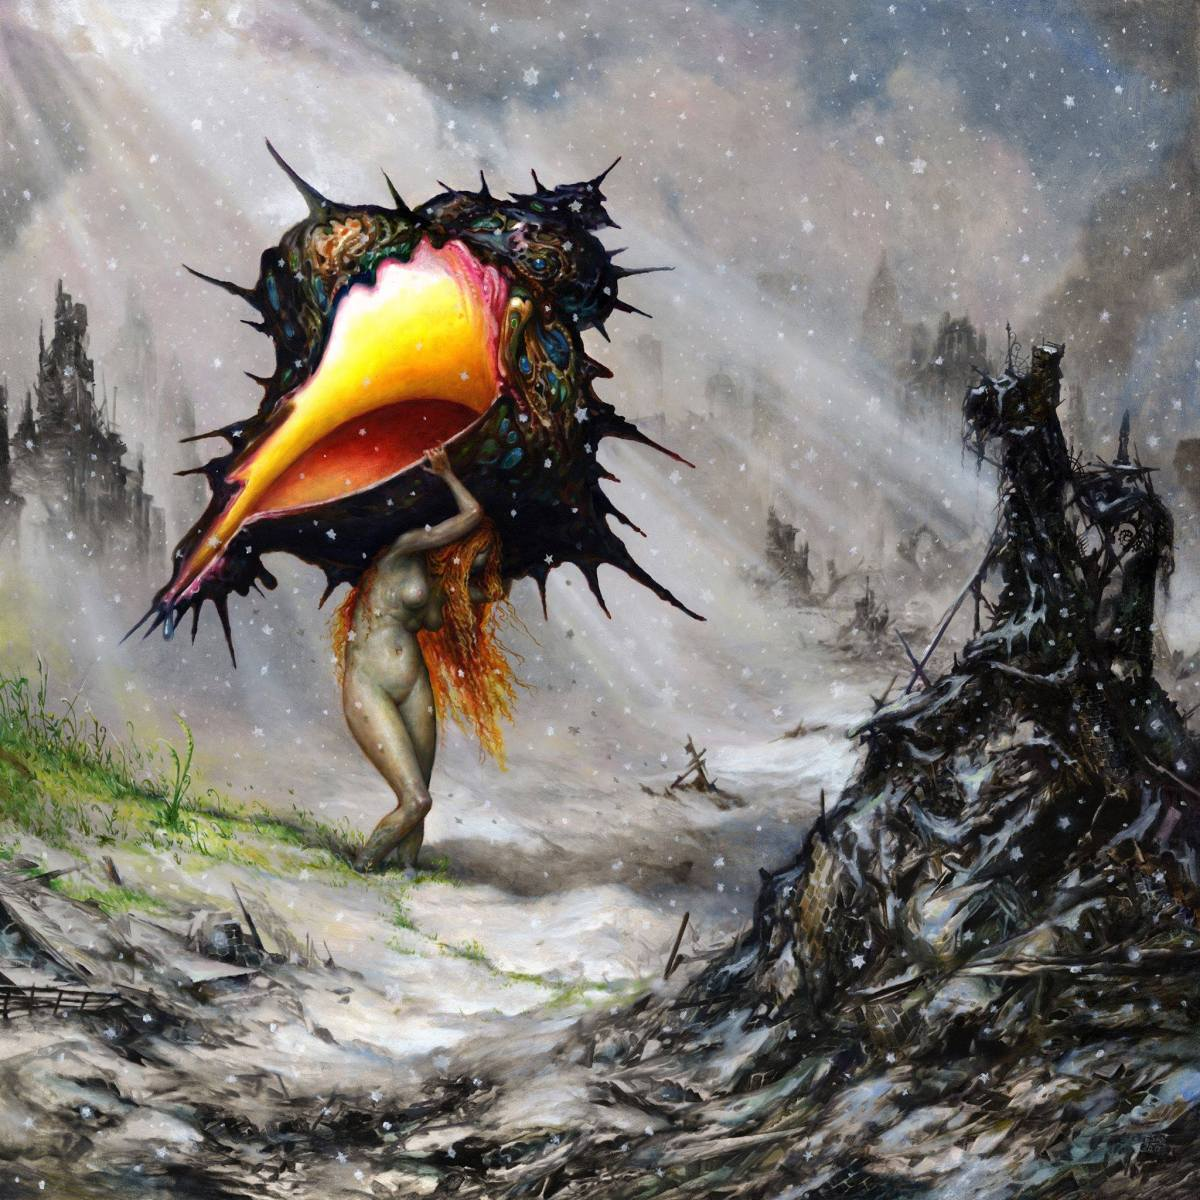 Circa Survive- Long Awaited and Exceeding Expectations